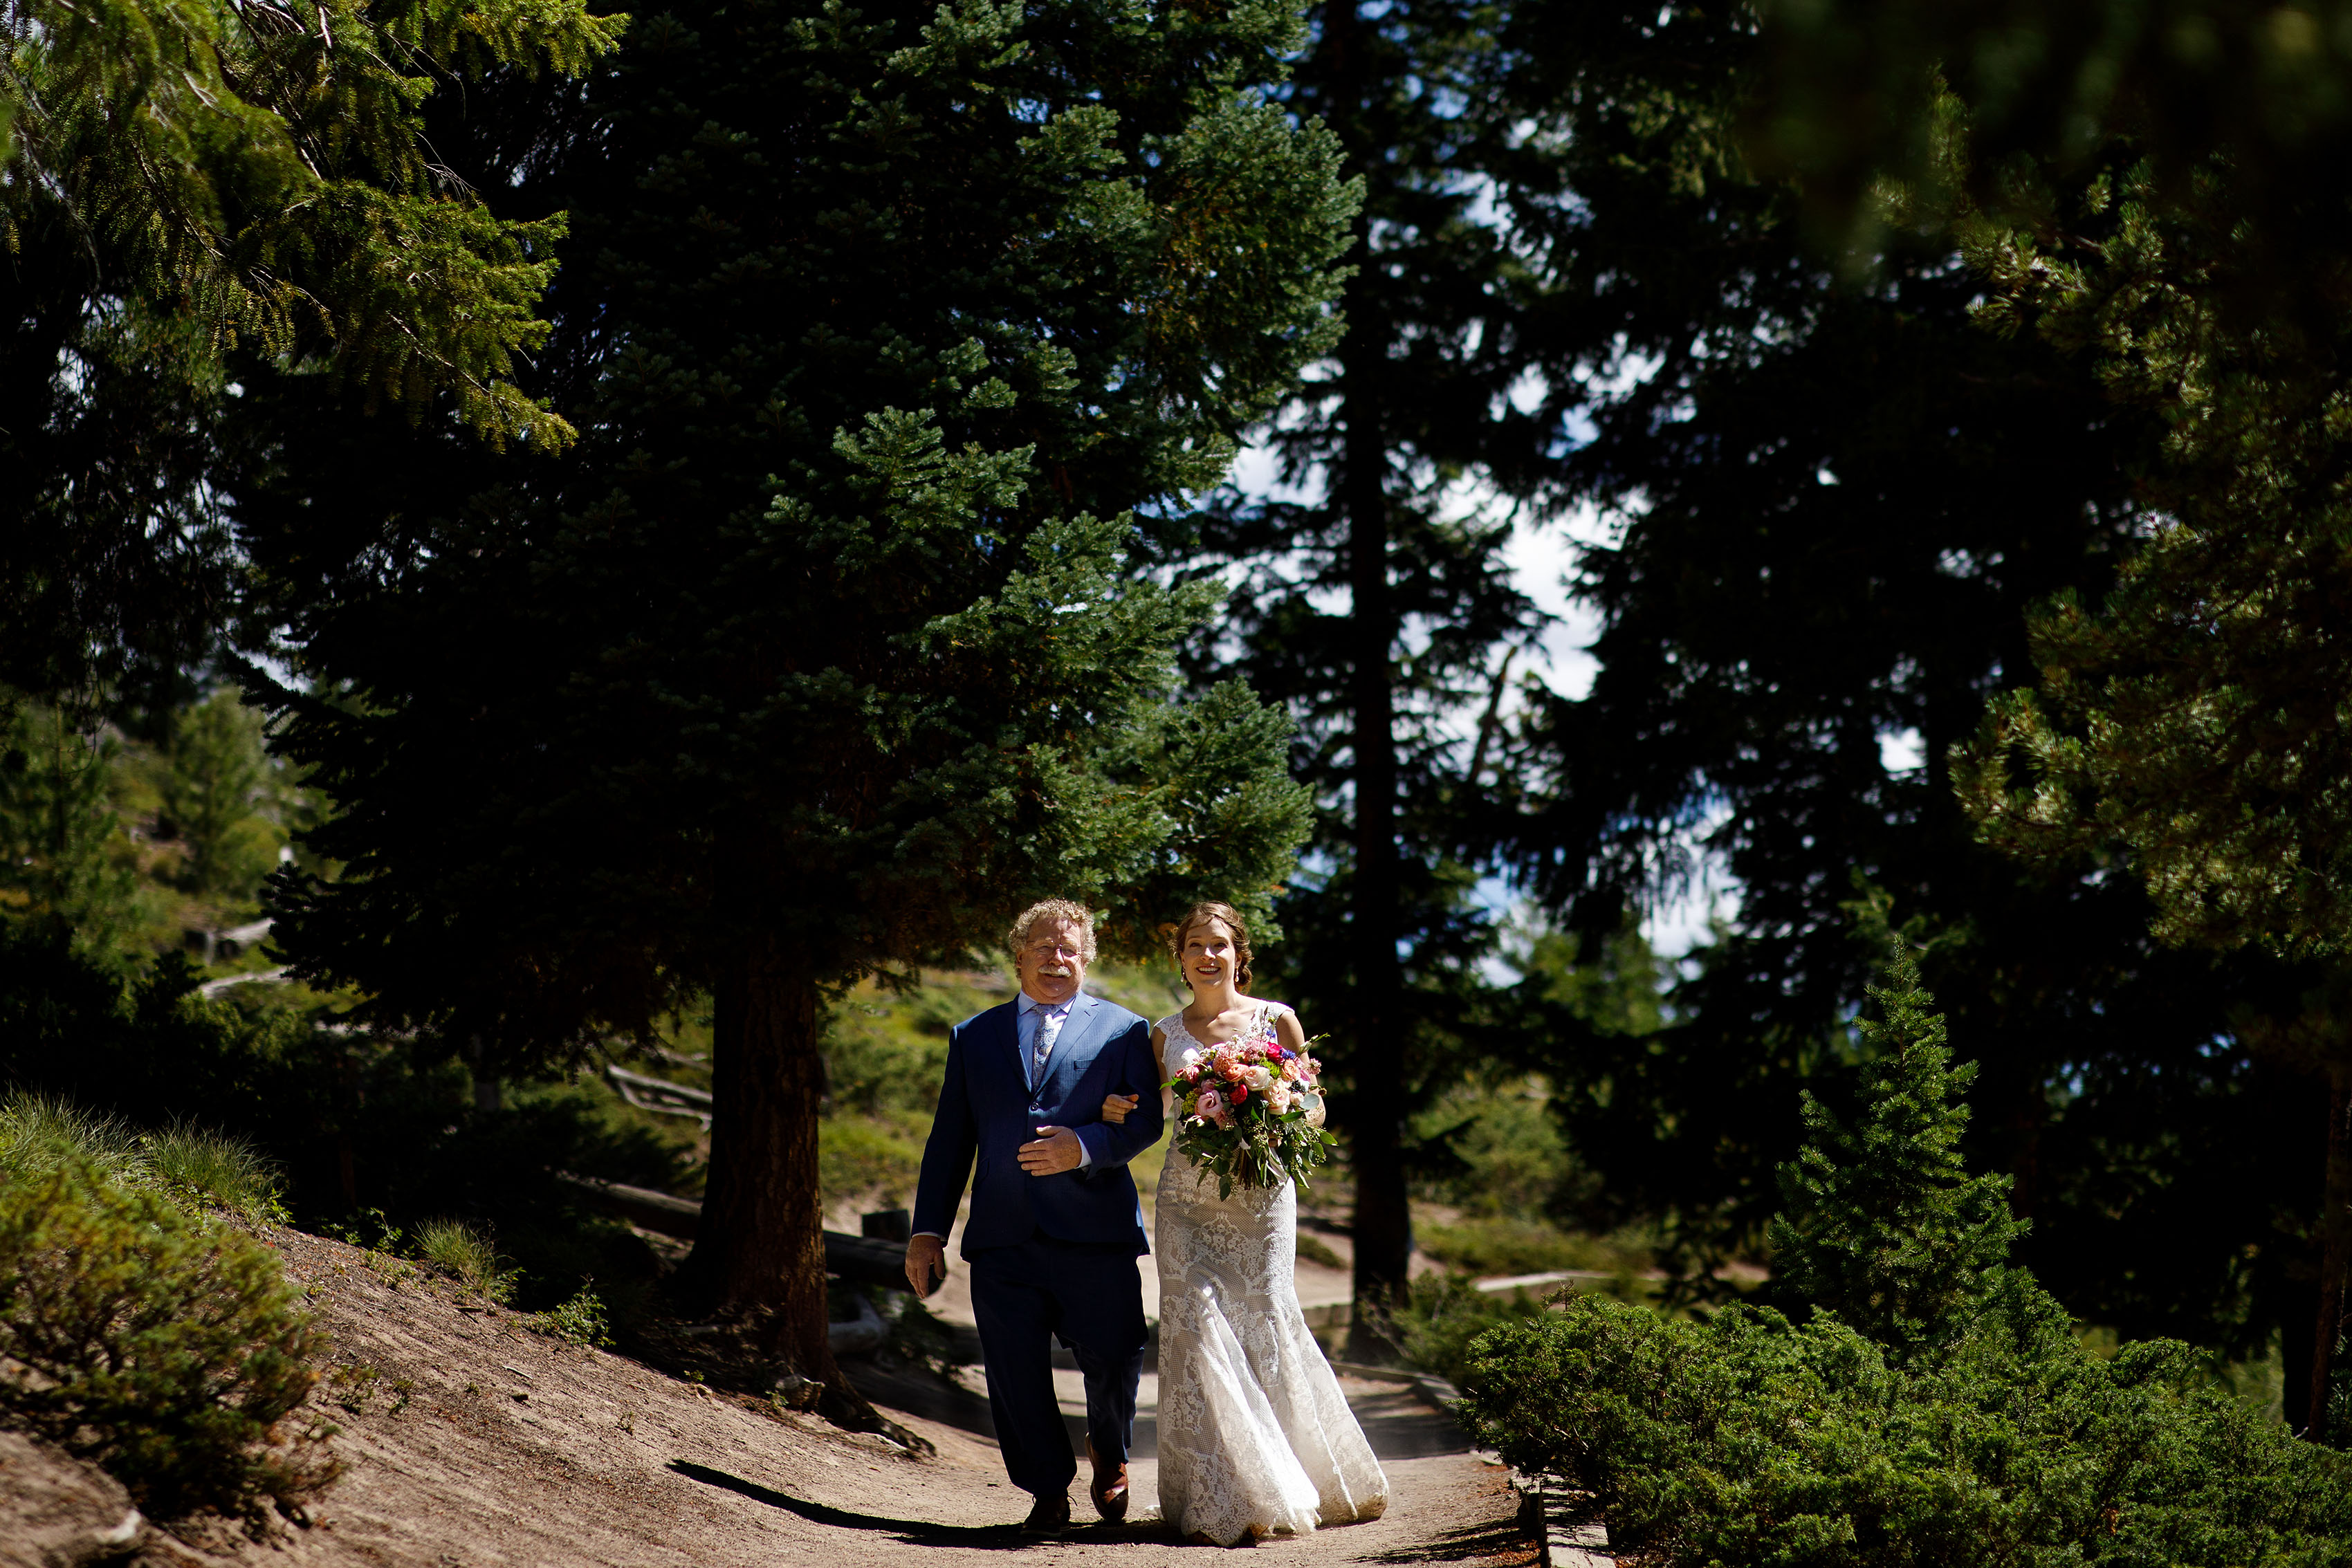 The bride walks down the path with her father at Sapphire Point